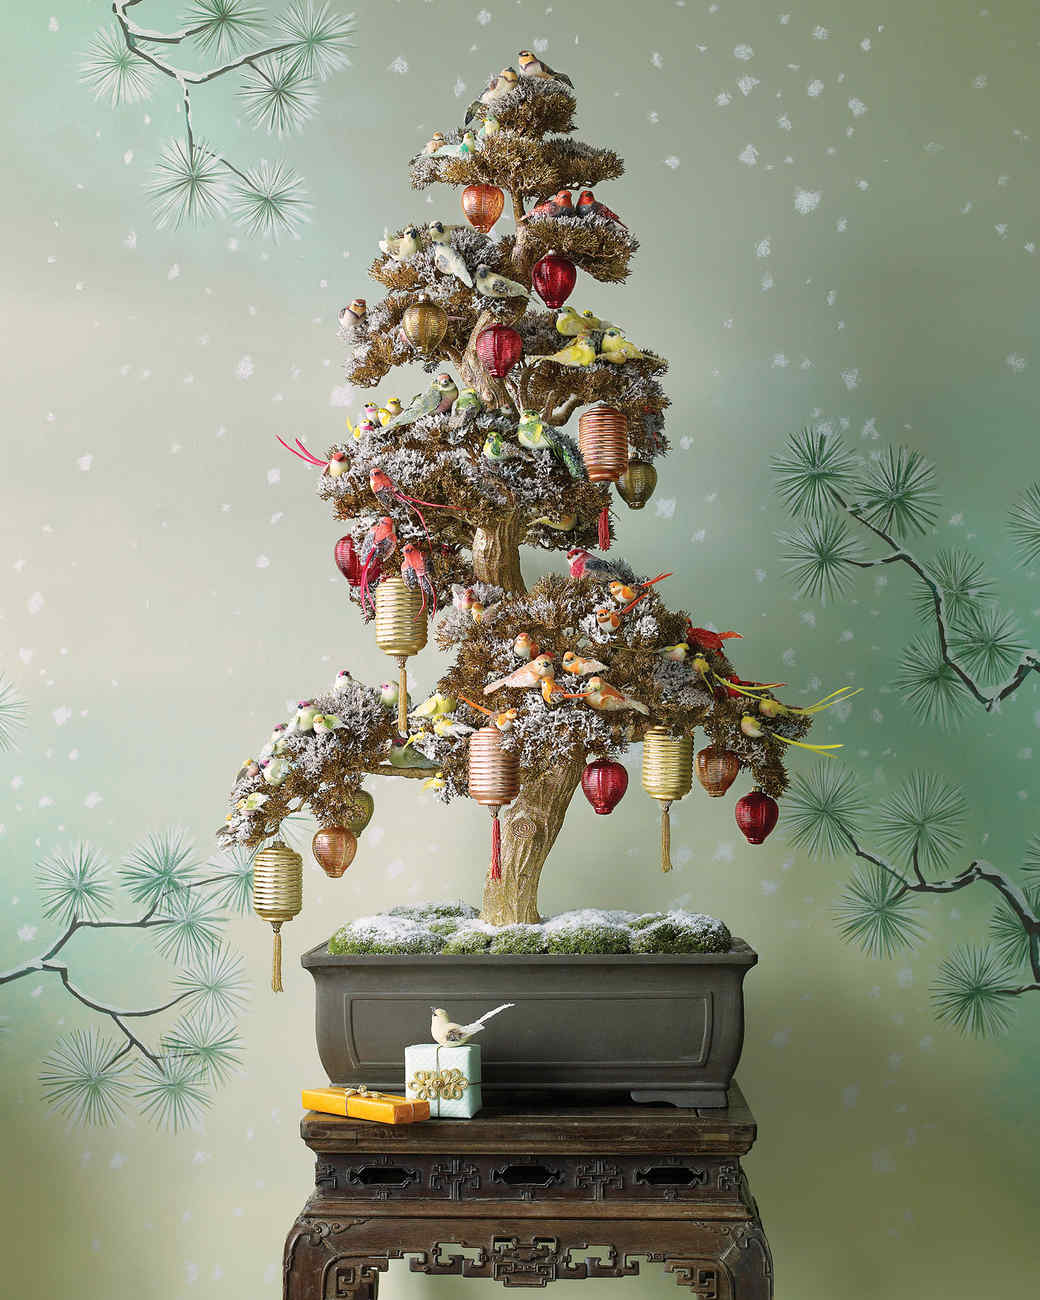 28 creative christmas tree decorating ideas martha stewart - Christmas Decorations For Small Trees